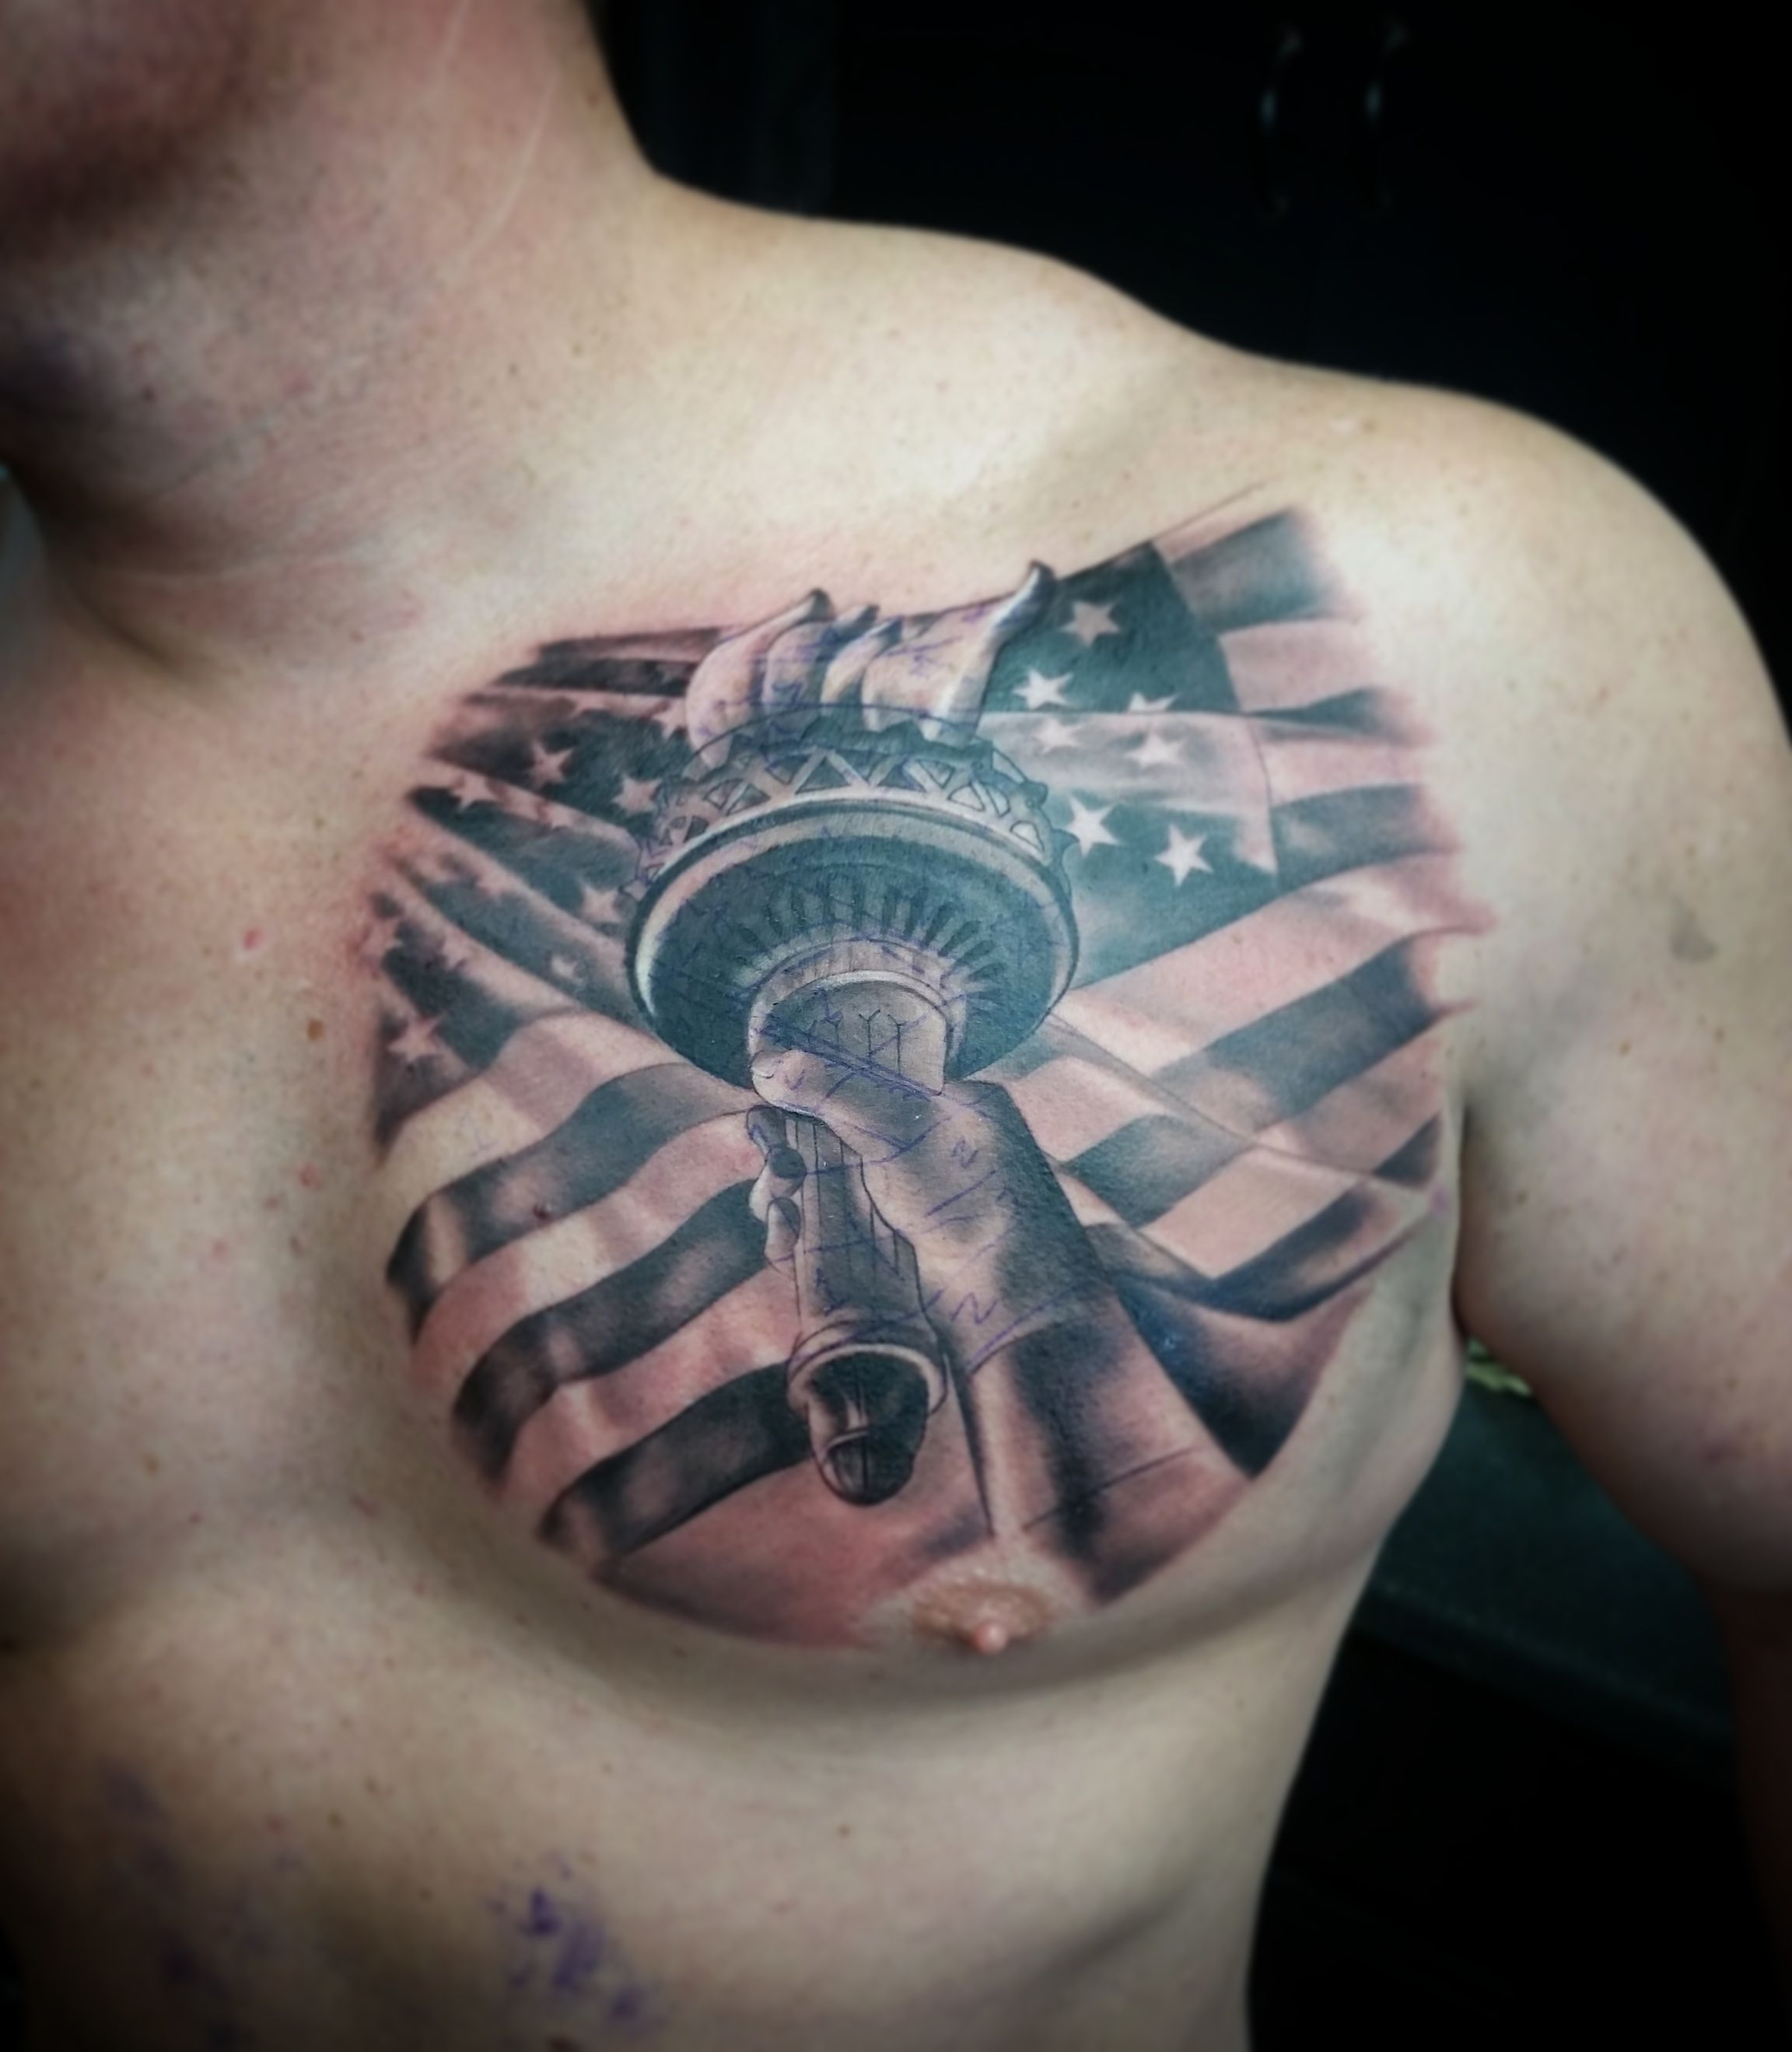 a0b02ffc3178b Tattoos by Wacky Statue of Liberty tattoo American flag chest piece black  and grey